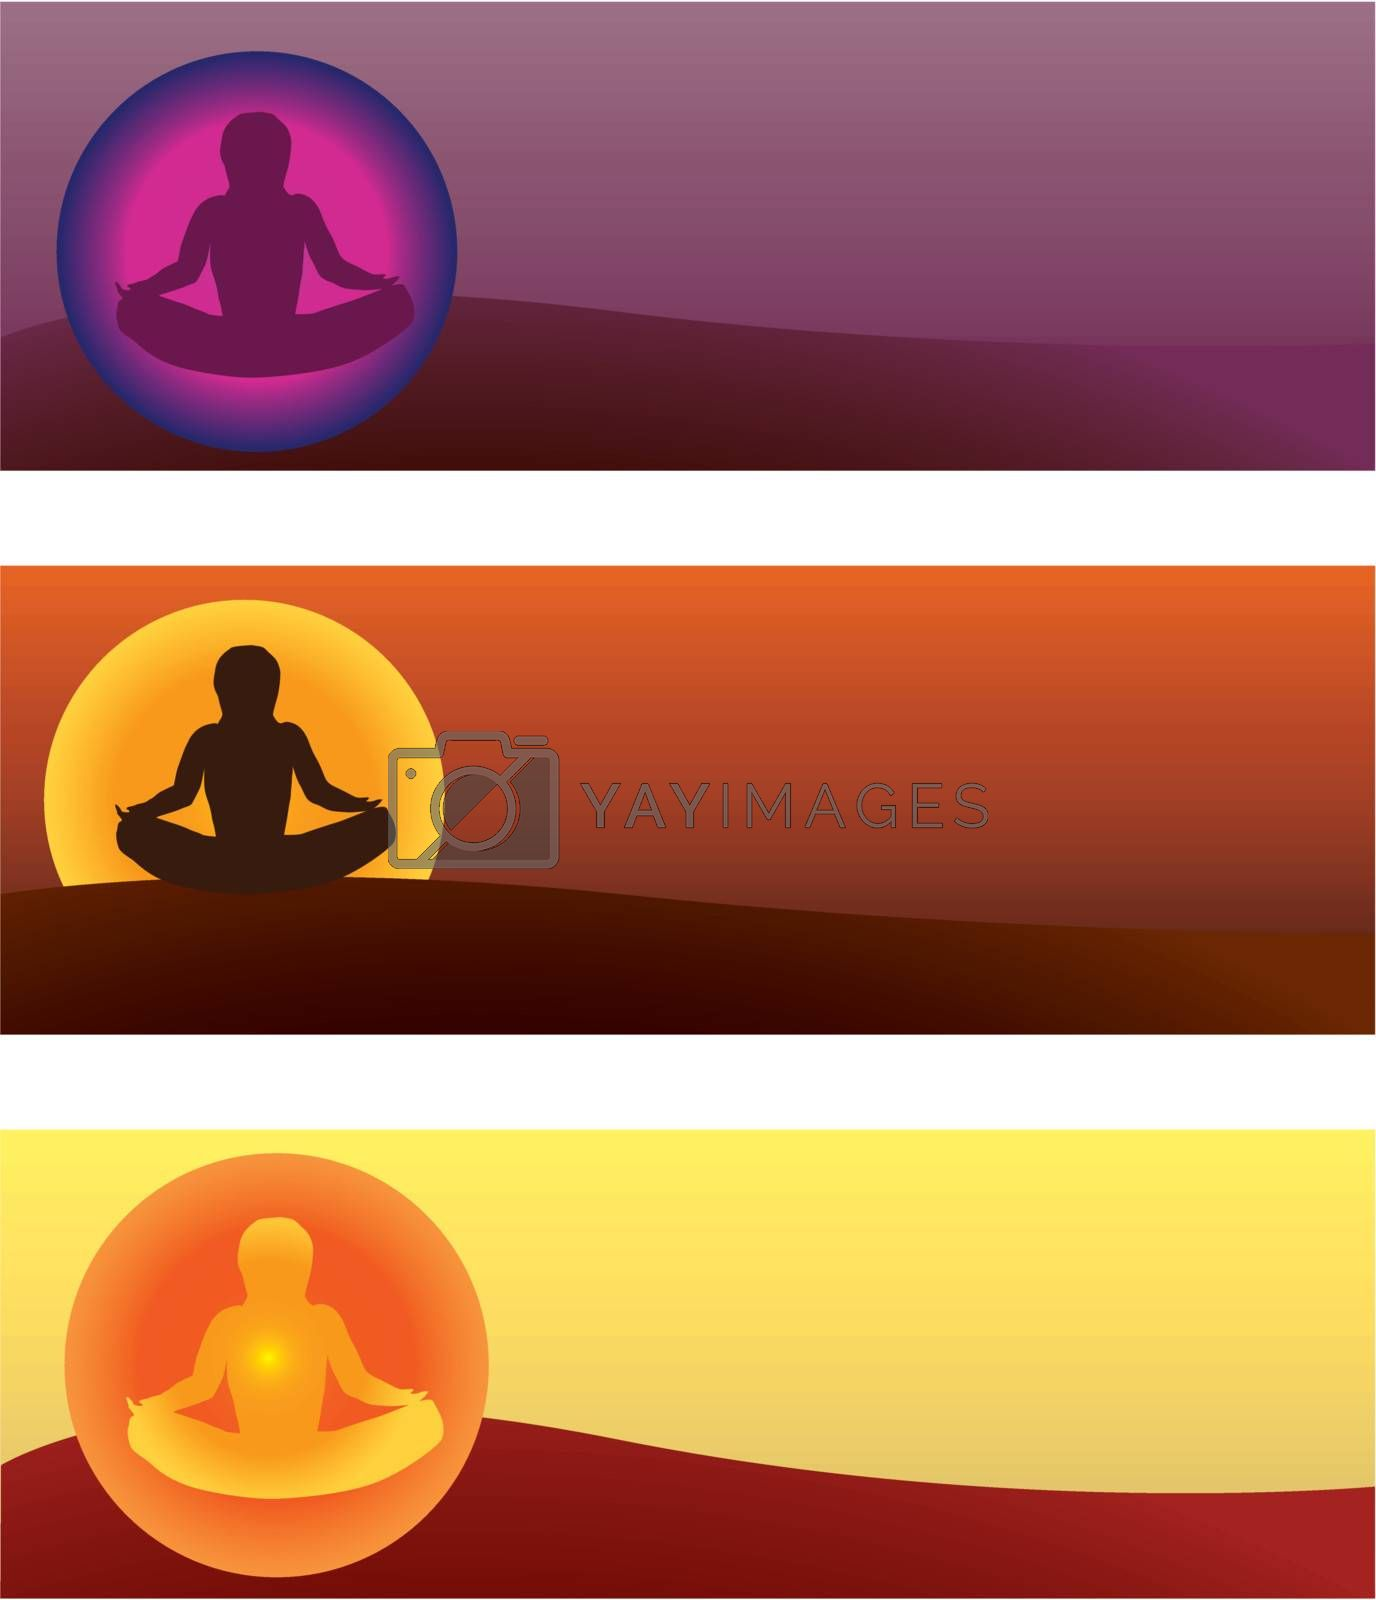 set of yoga banners vector illustrations